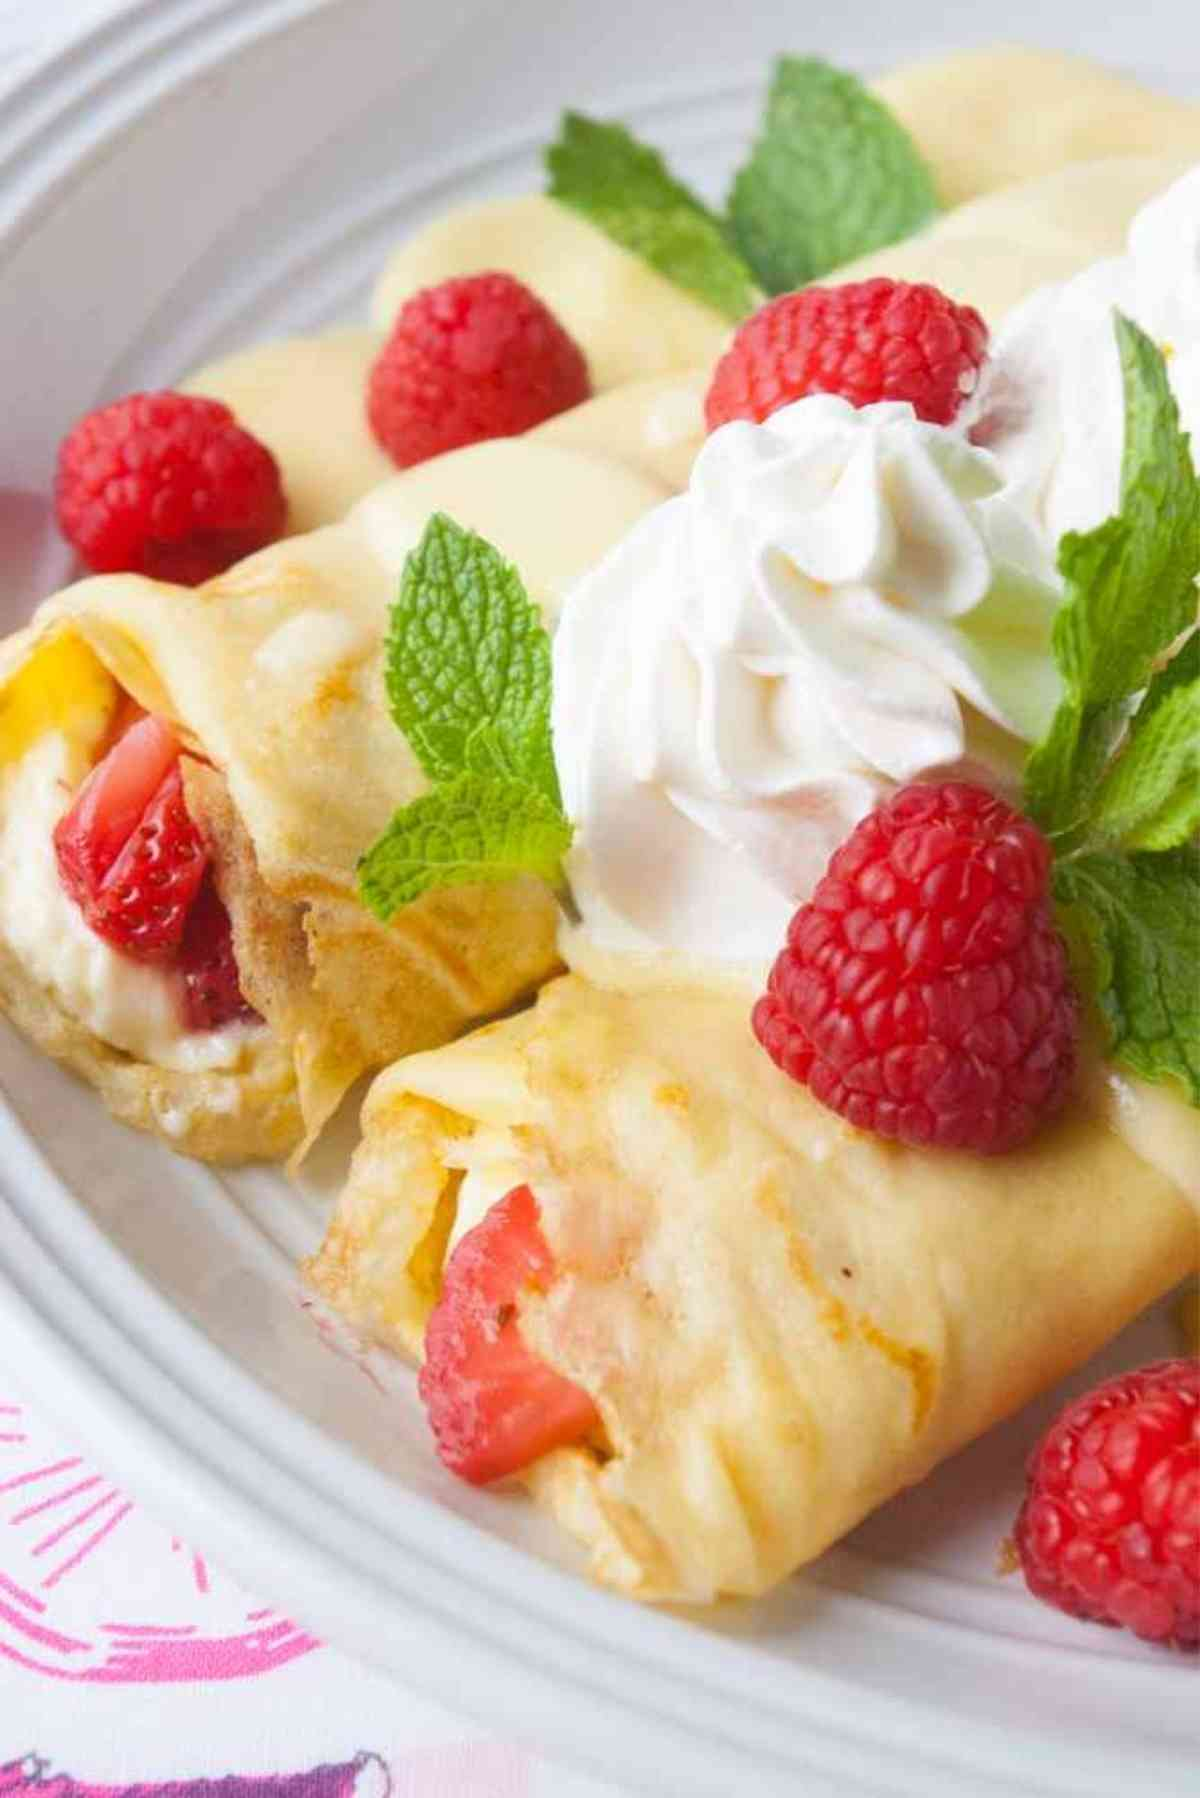 Two berry cream filled crepes garnished with raspberries and mint!